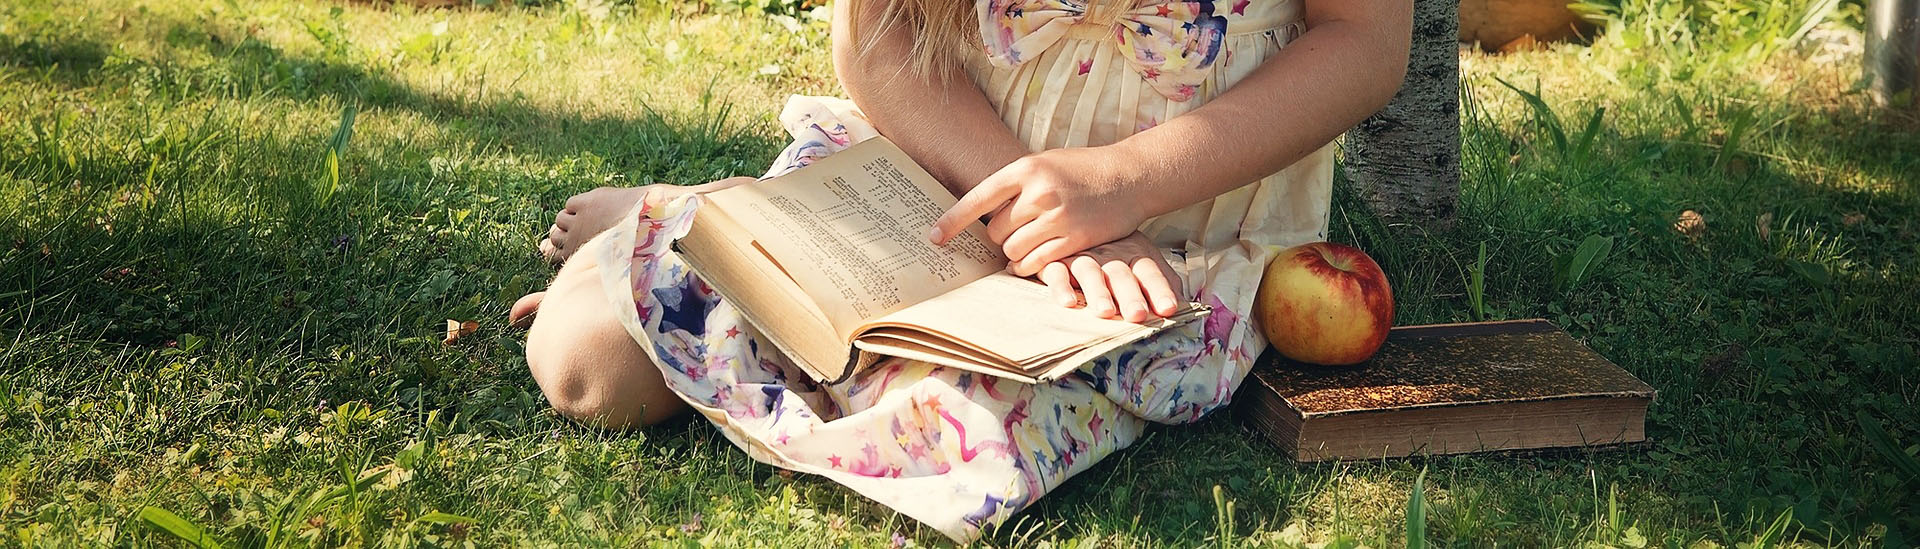 Resources & References, girl reading